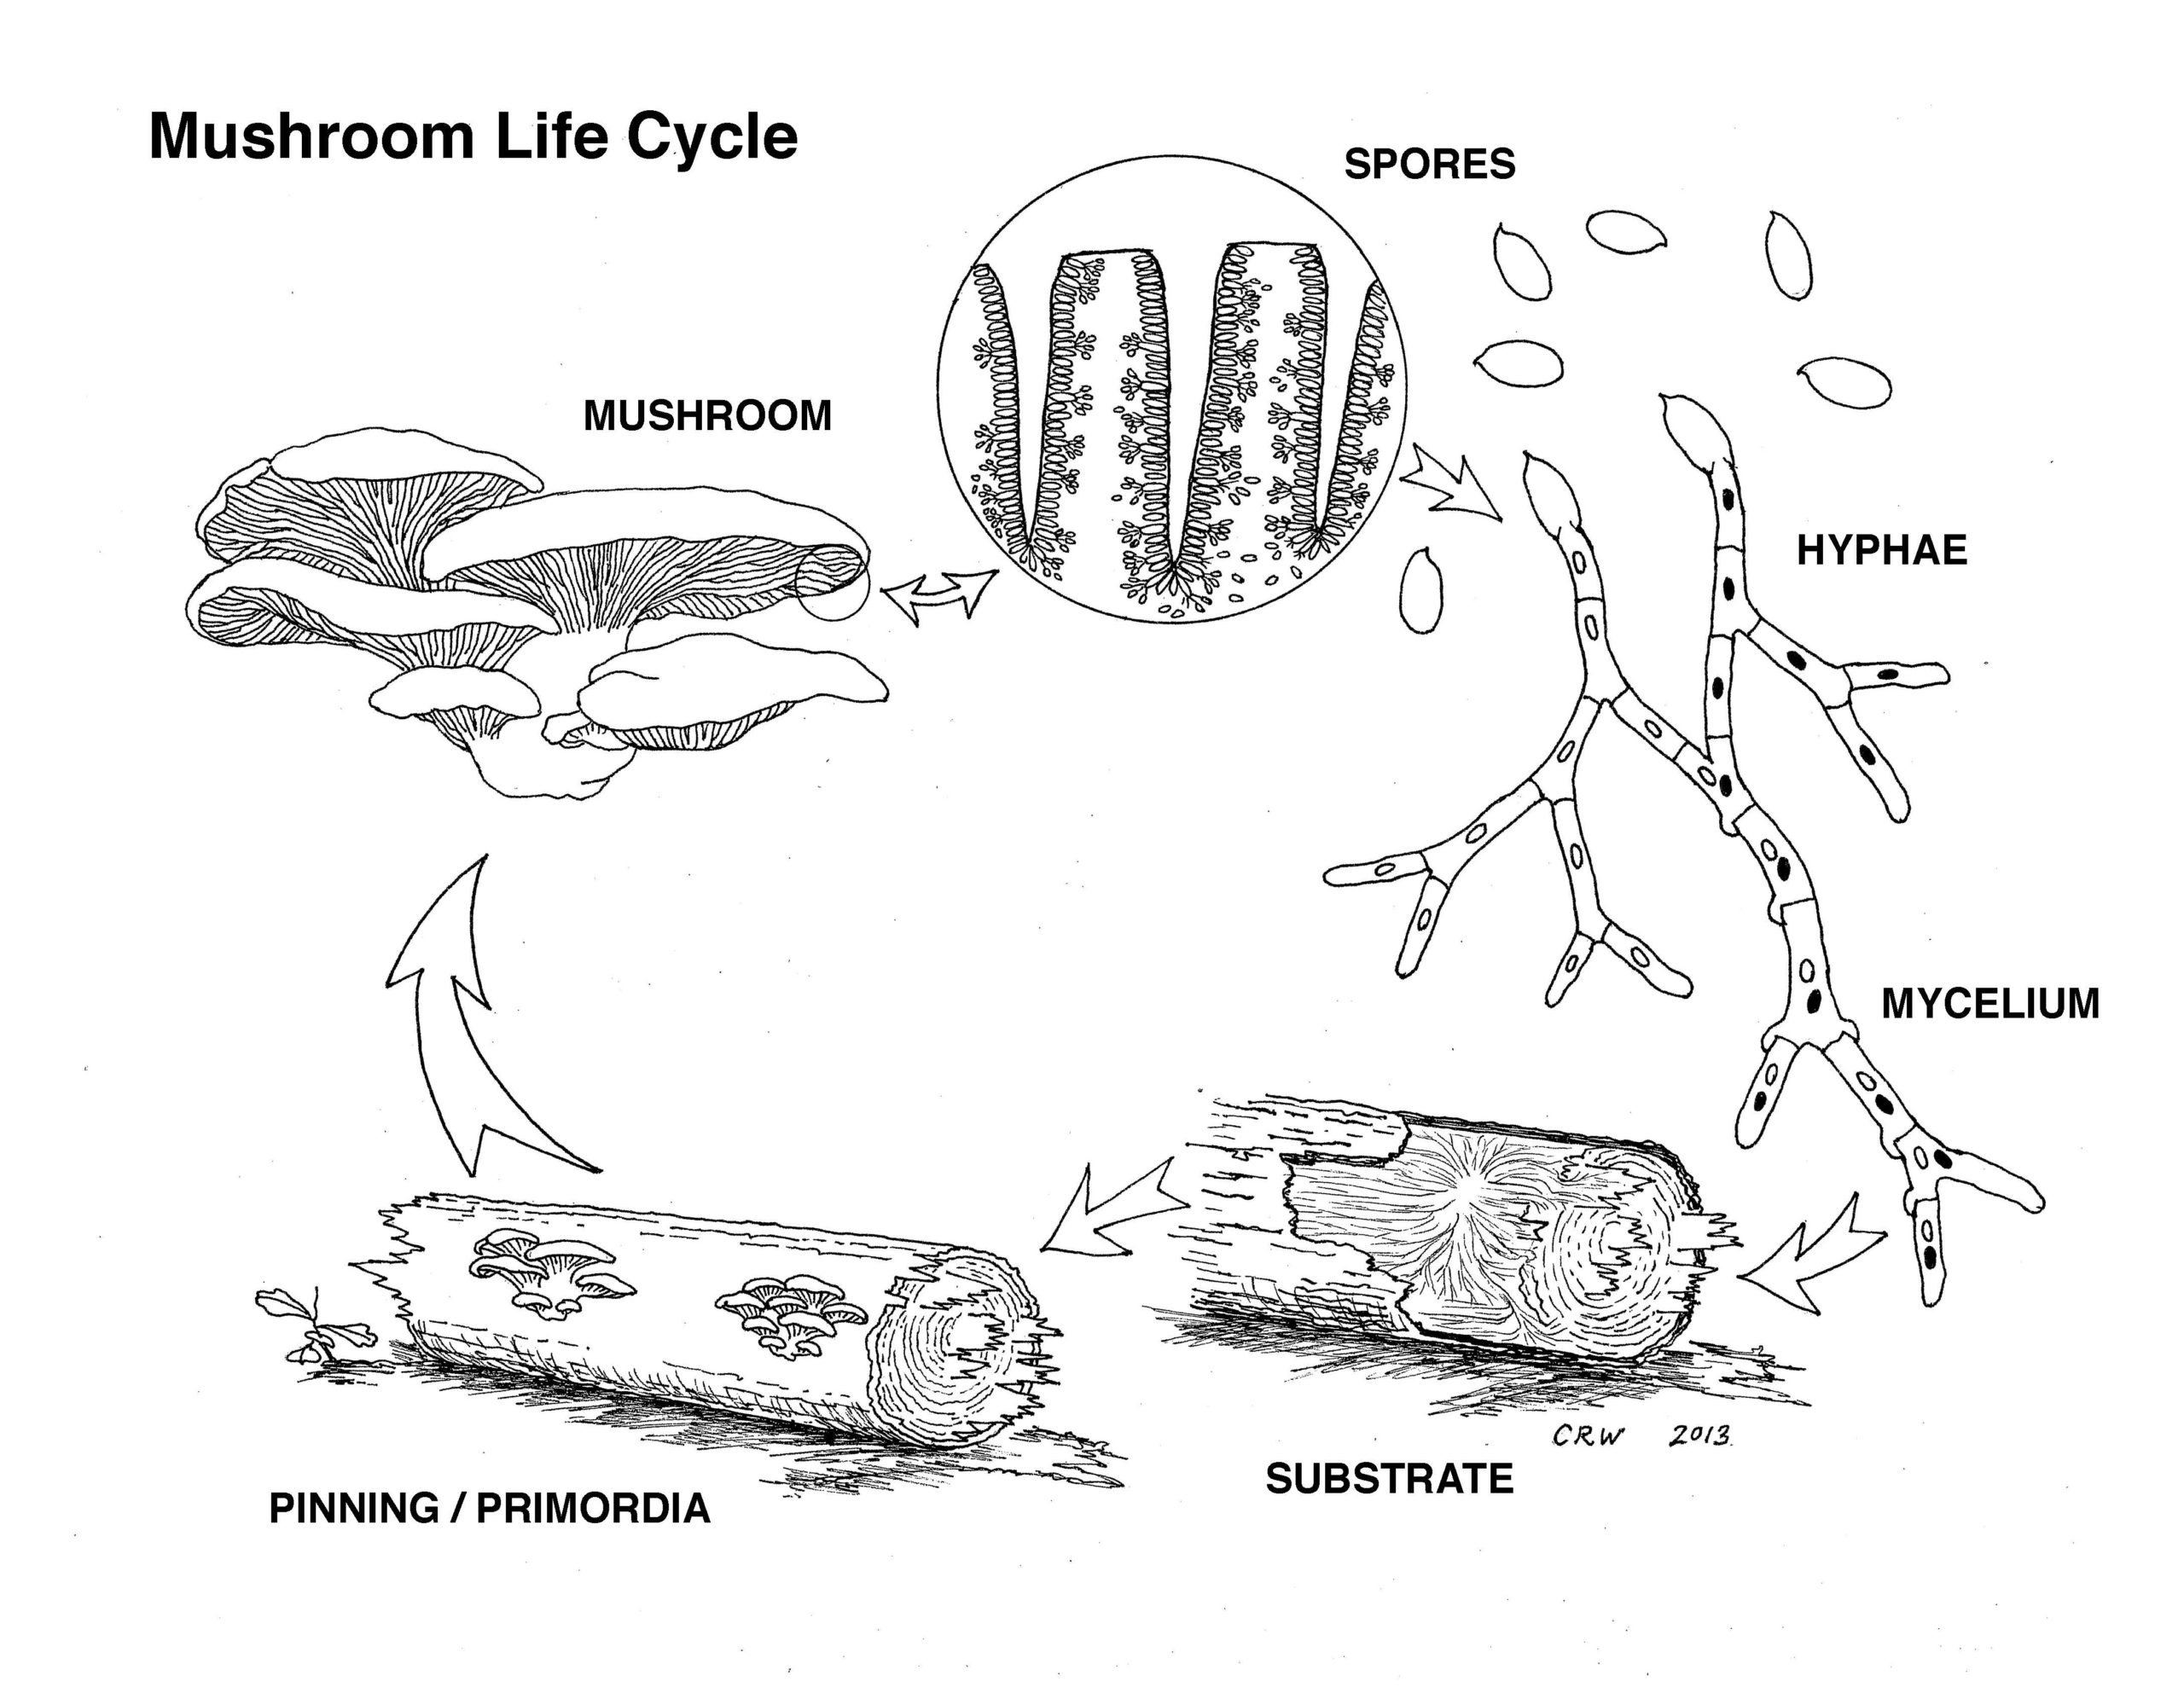 The Mushroom lifecycle is composed of 5 steps. First the mushroom releases spores. The spores join and grow into hyphae. Many hyphae create mycelium which inoculate themselves inside if the substrate. The next step is the pinning or primordia phase where small mushroom heads emerge from the substrate. Finally, the pins turn into full mushroom fruiting bodies.